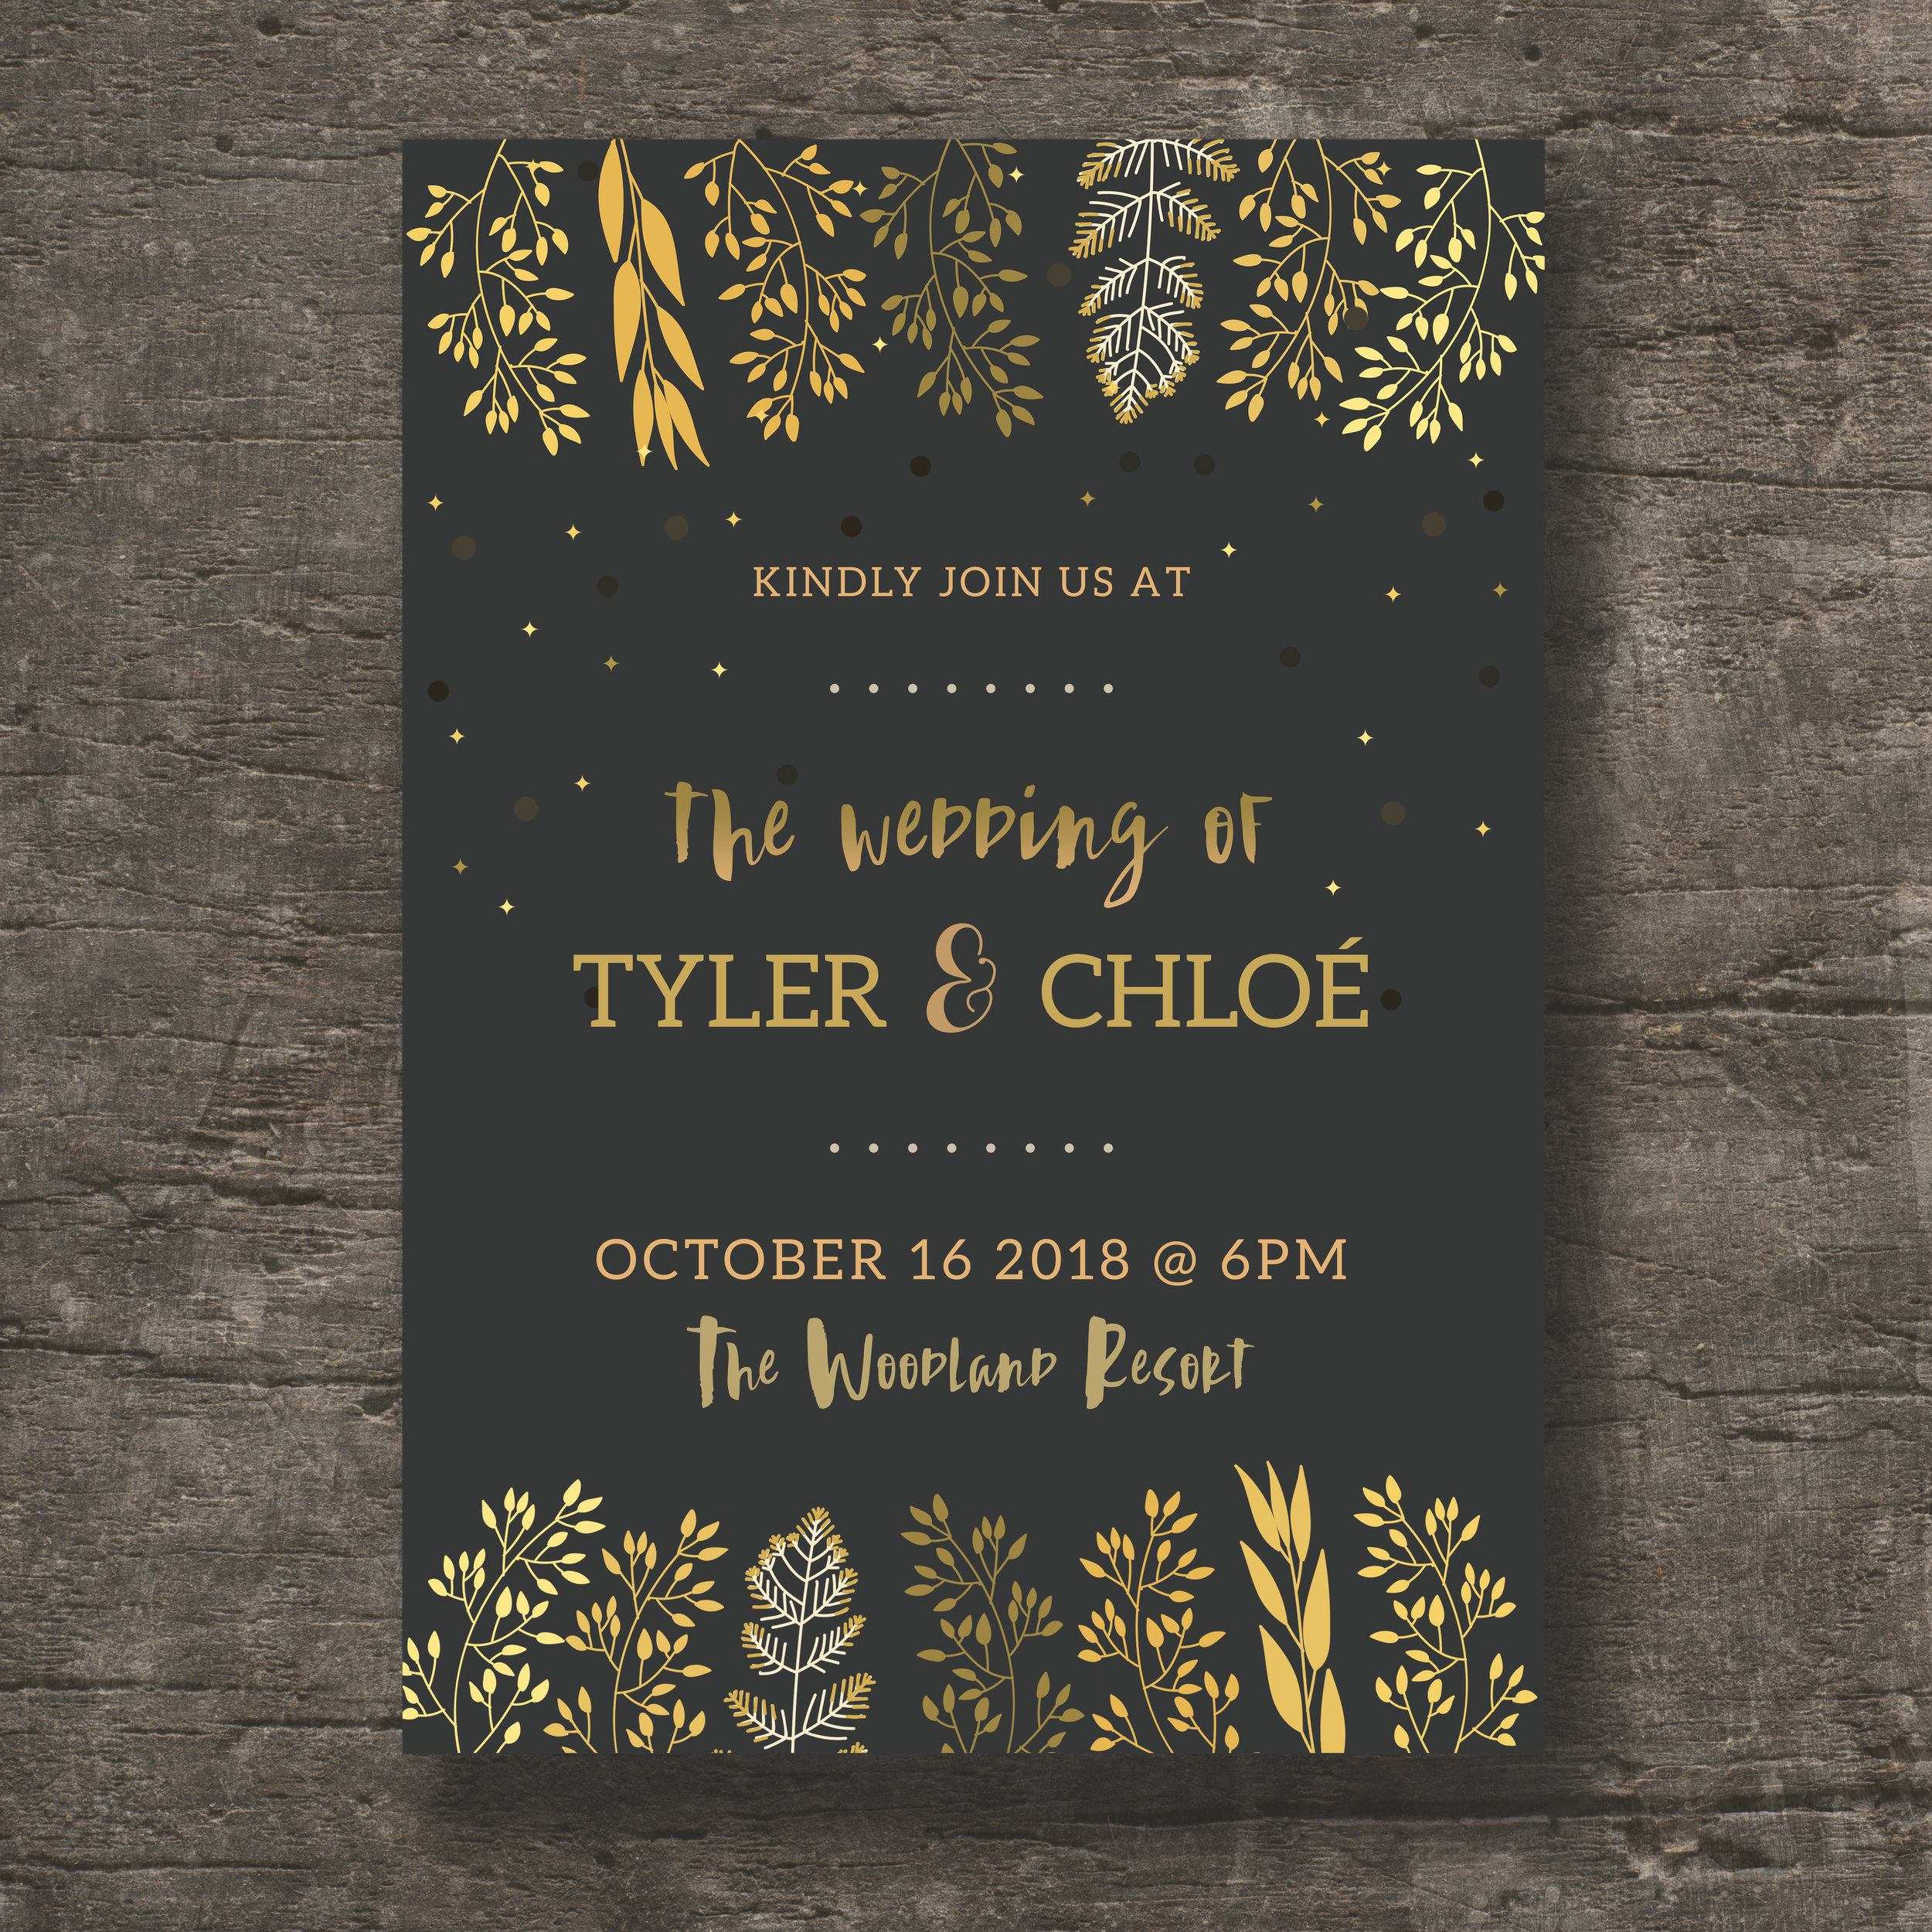 Golden Woods - Tyler & Chloé.jpg